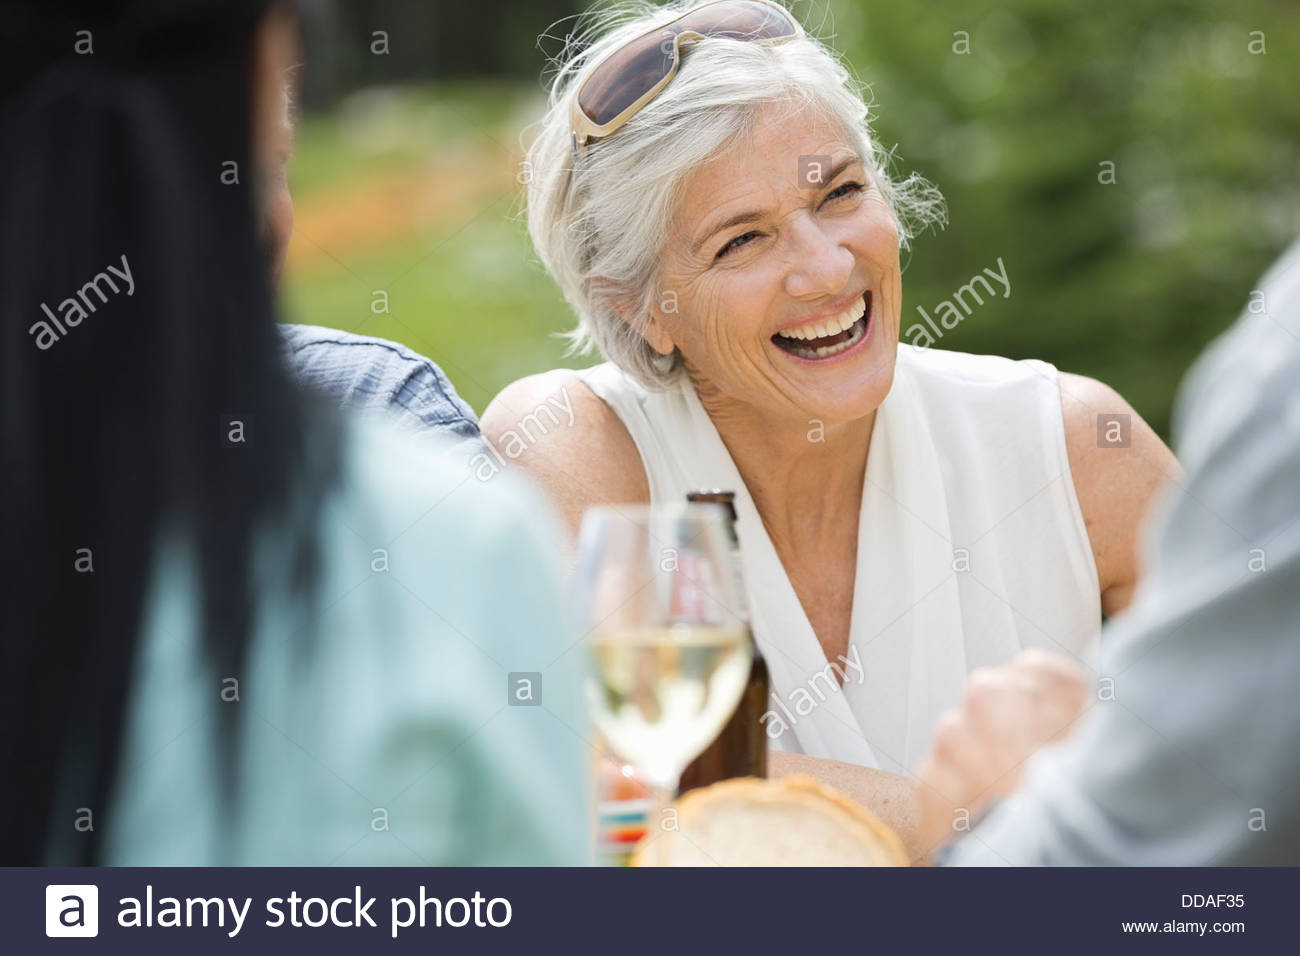 Mature woman smiling among friends - Stock Image